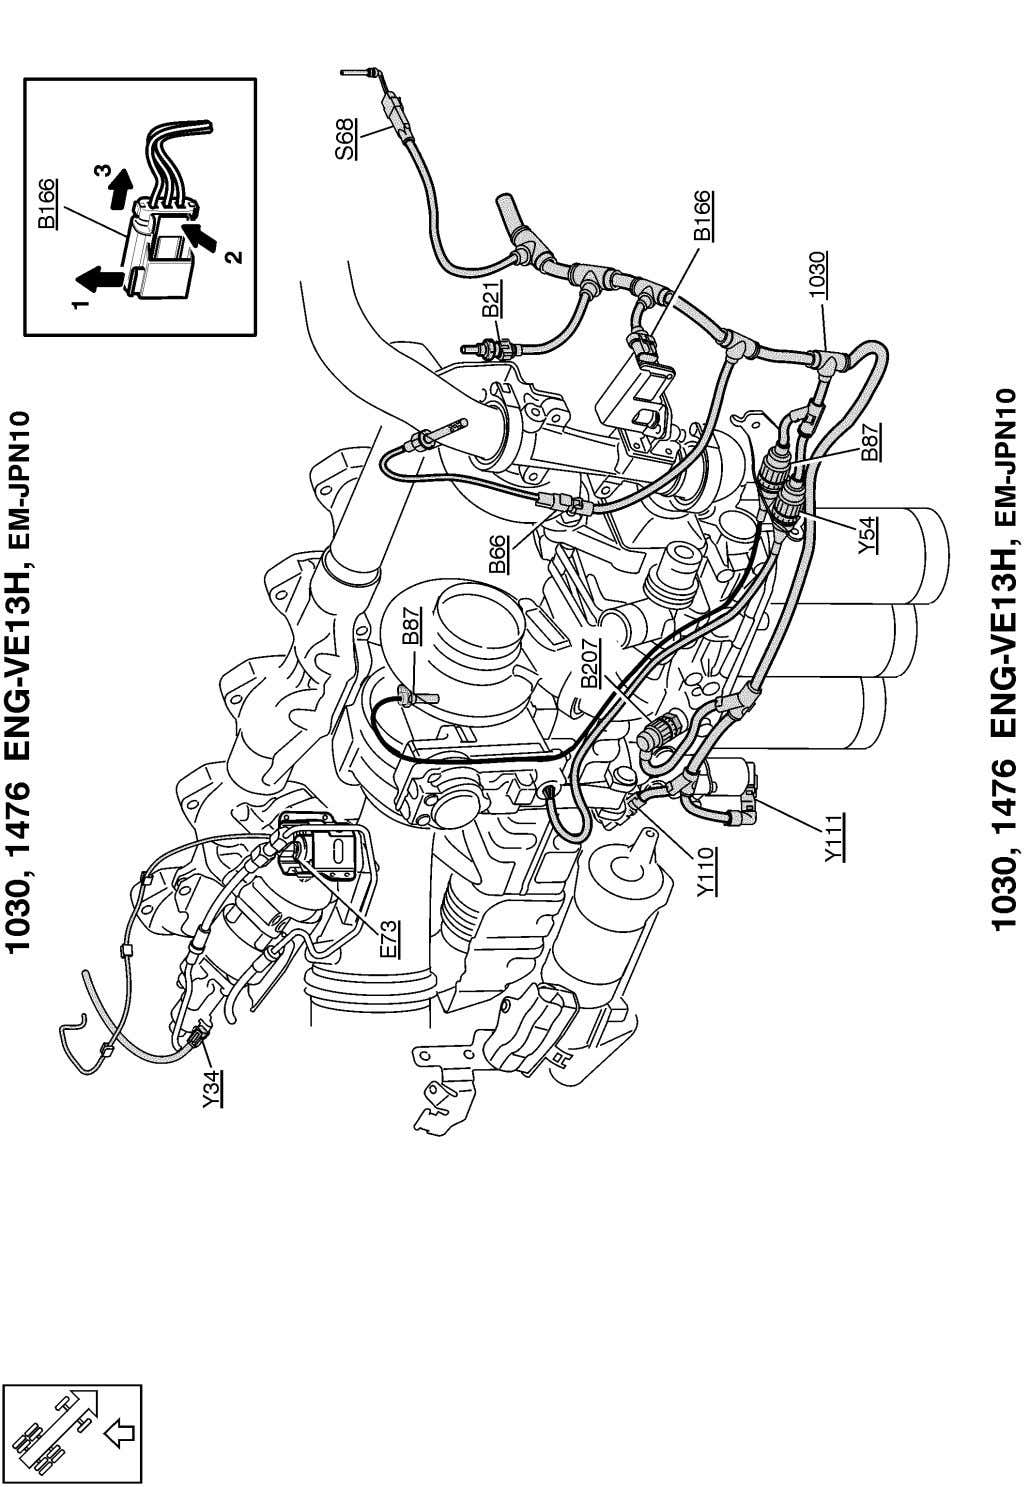 T3056933 Wiring diagram Page 161 (298)